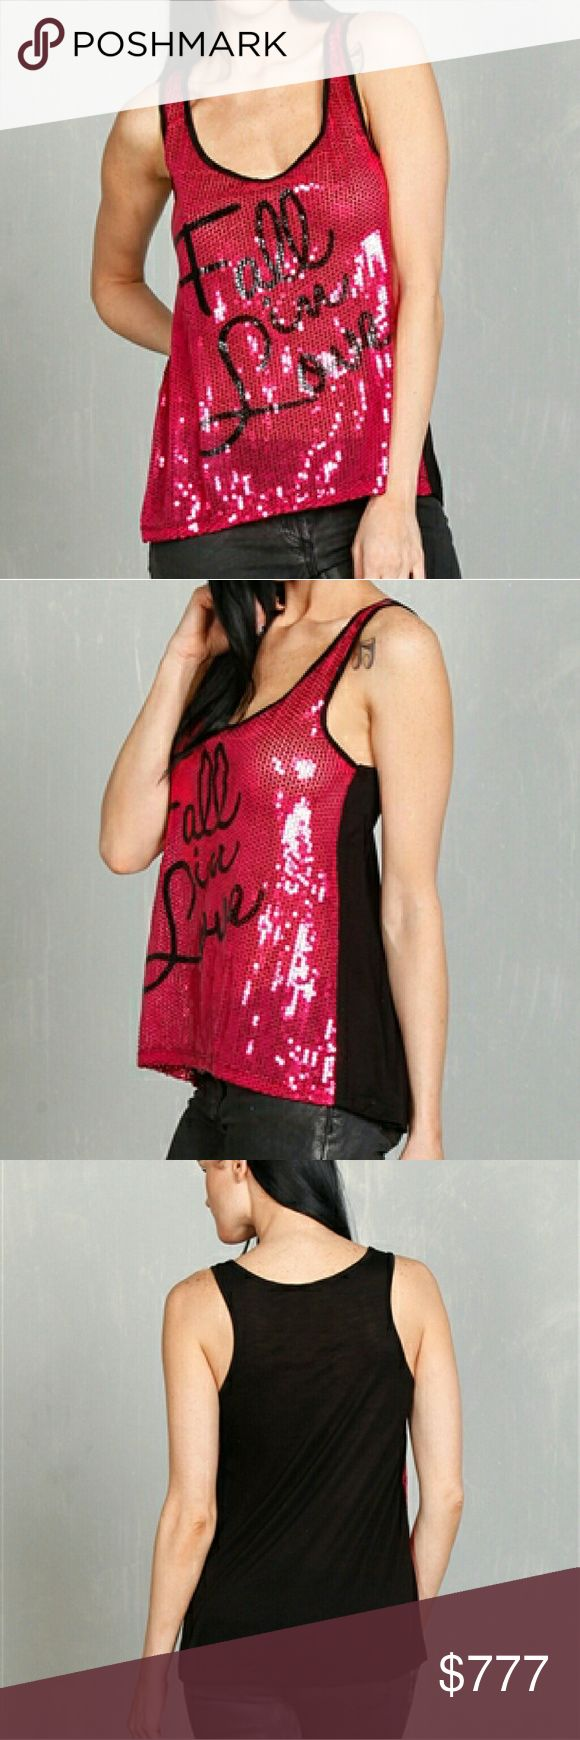 """FALL IN LOVE"" Valentine's Day top Brand new with tags Boutique item  ""FALL IN LOVE"" with this sassy little tank top! Front is covered in fushcia sequins and FALL IN LOVE detail while the back is solid black. Pair black skinny pants, heels and a open front cardigan for VALENTINE'S DAY!  68% POLYESTER 29%RAYON 3%SPANDEX Tops"